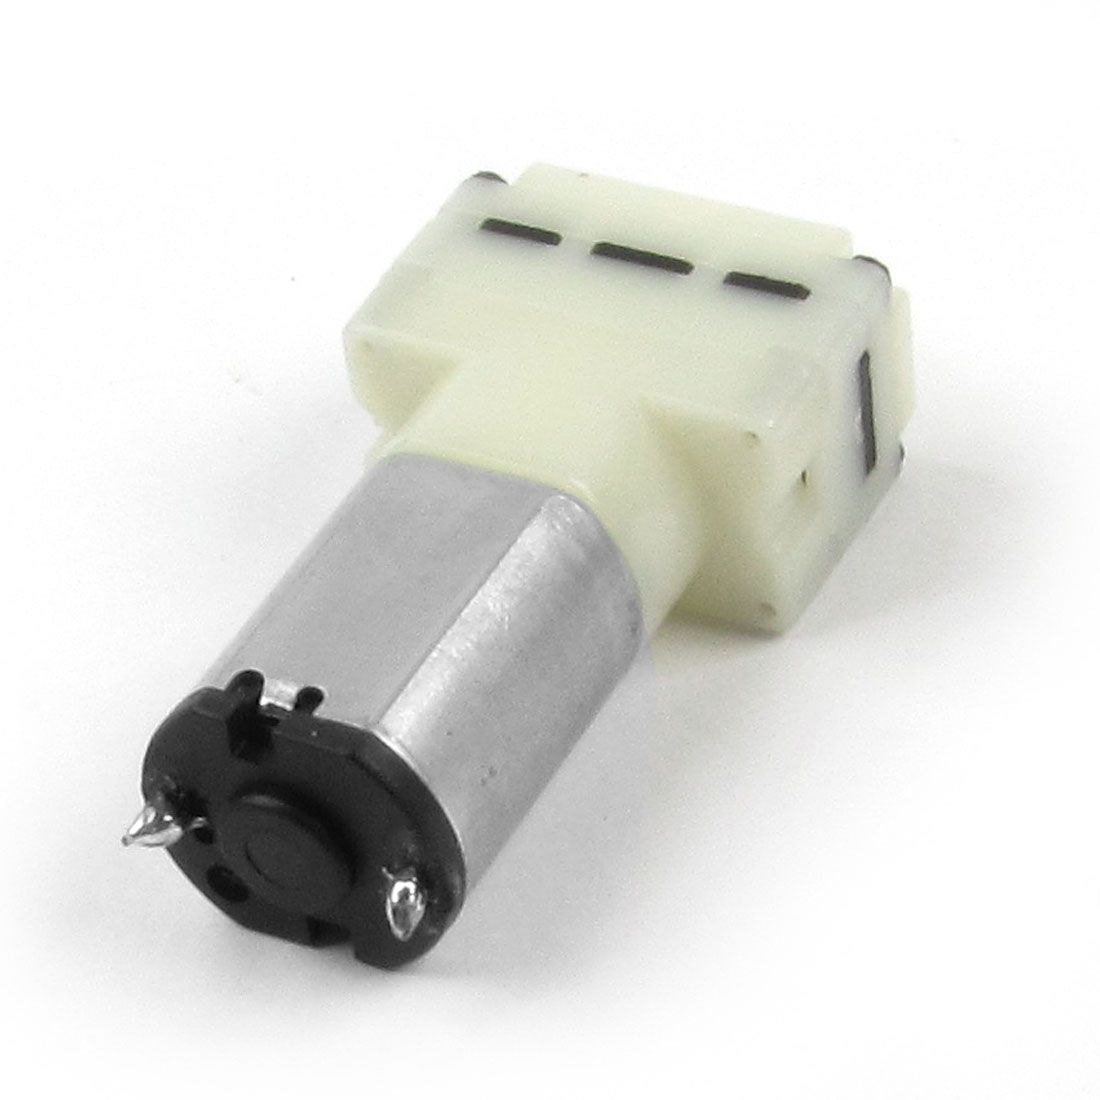 White Plastic Mini Pume KMP12A-3C DC 3V Air Pump Motor